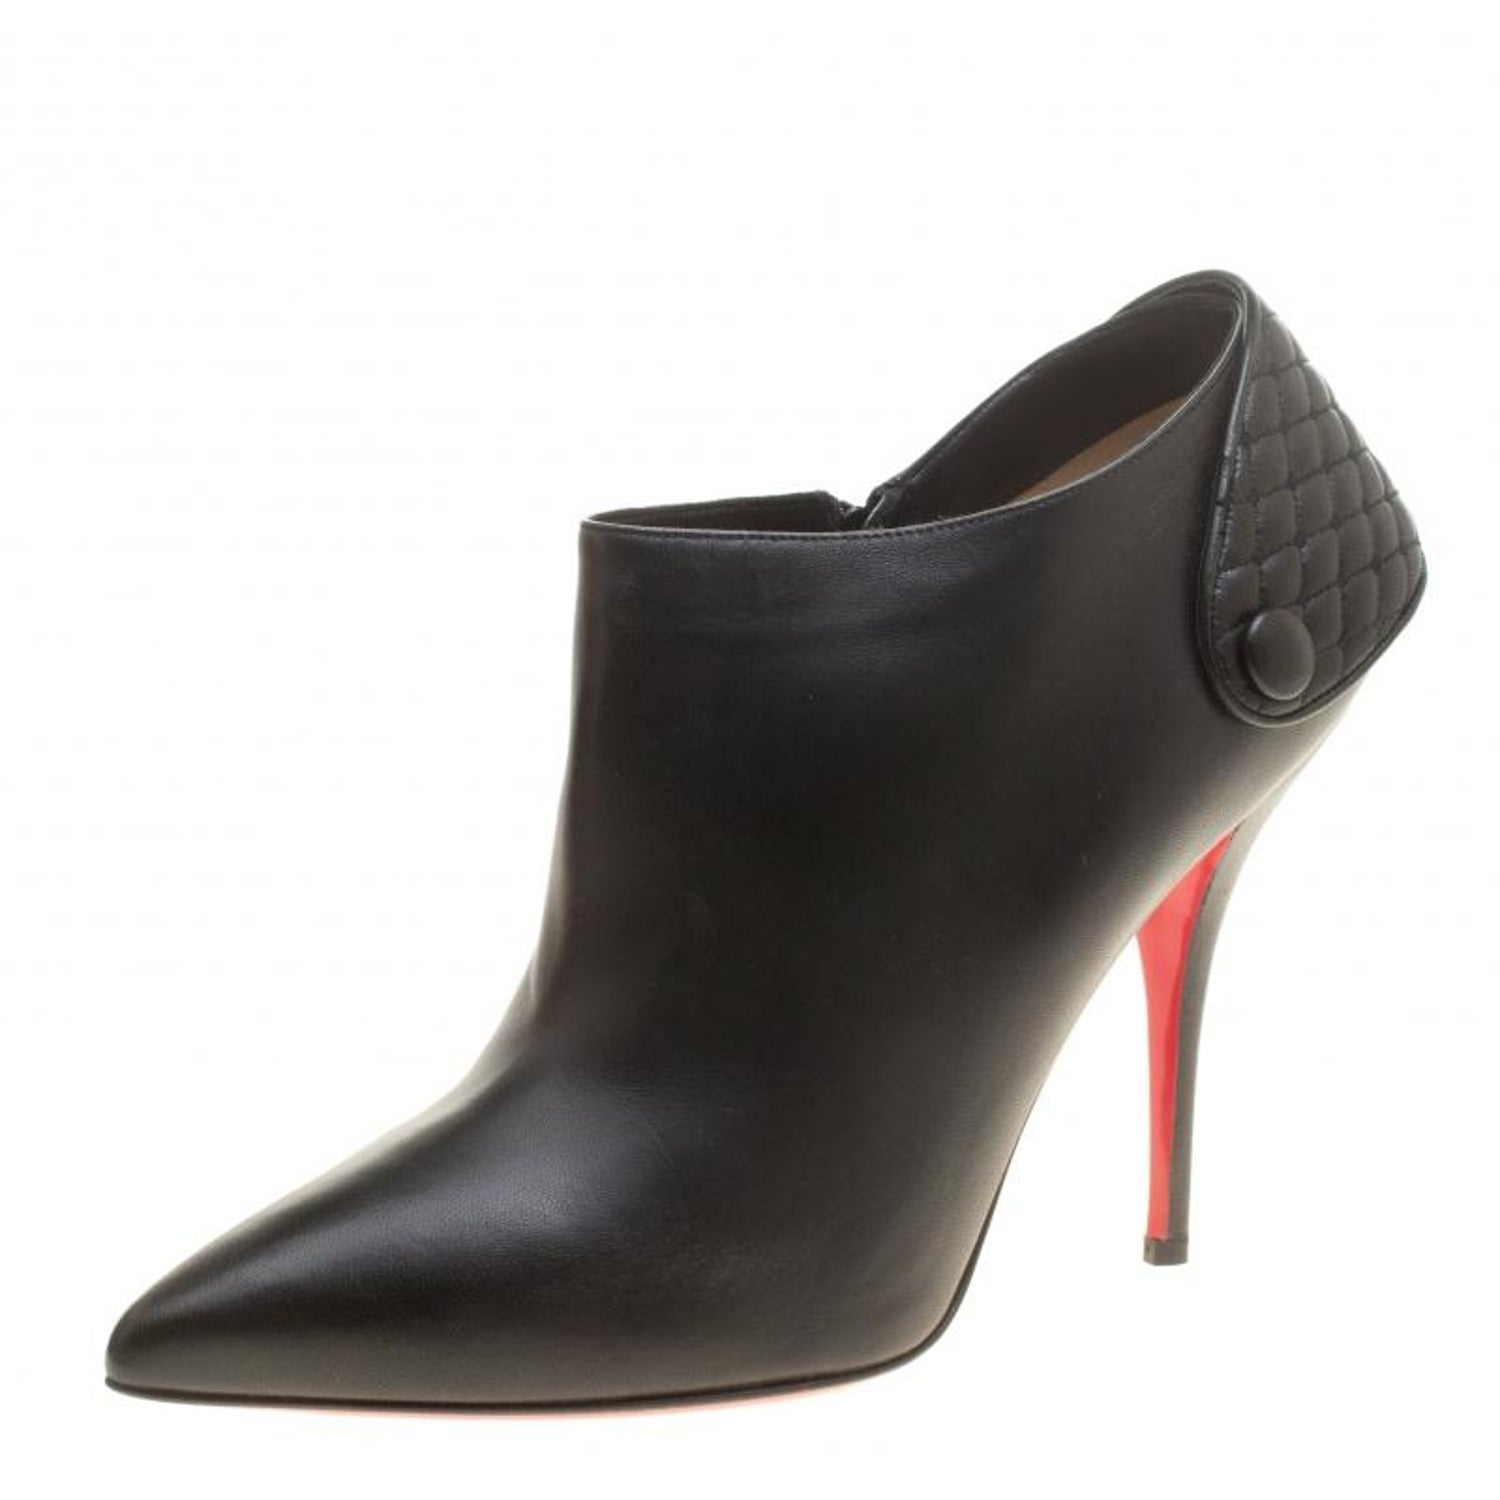 59067d2546a1 Christian Louboutin Black Leather Huguette Pointed Toe Ankle Booties Size  41 For Sale at 1stdibs